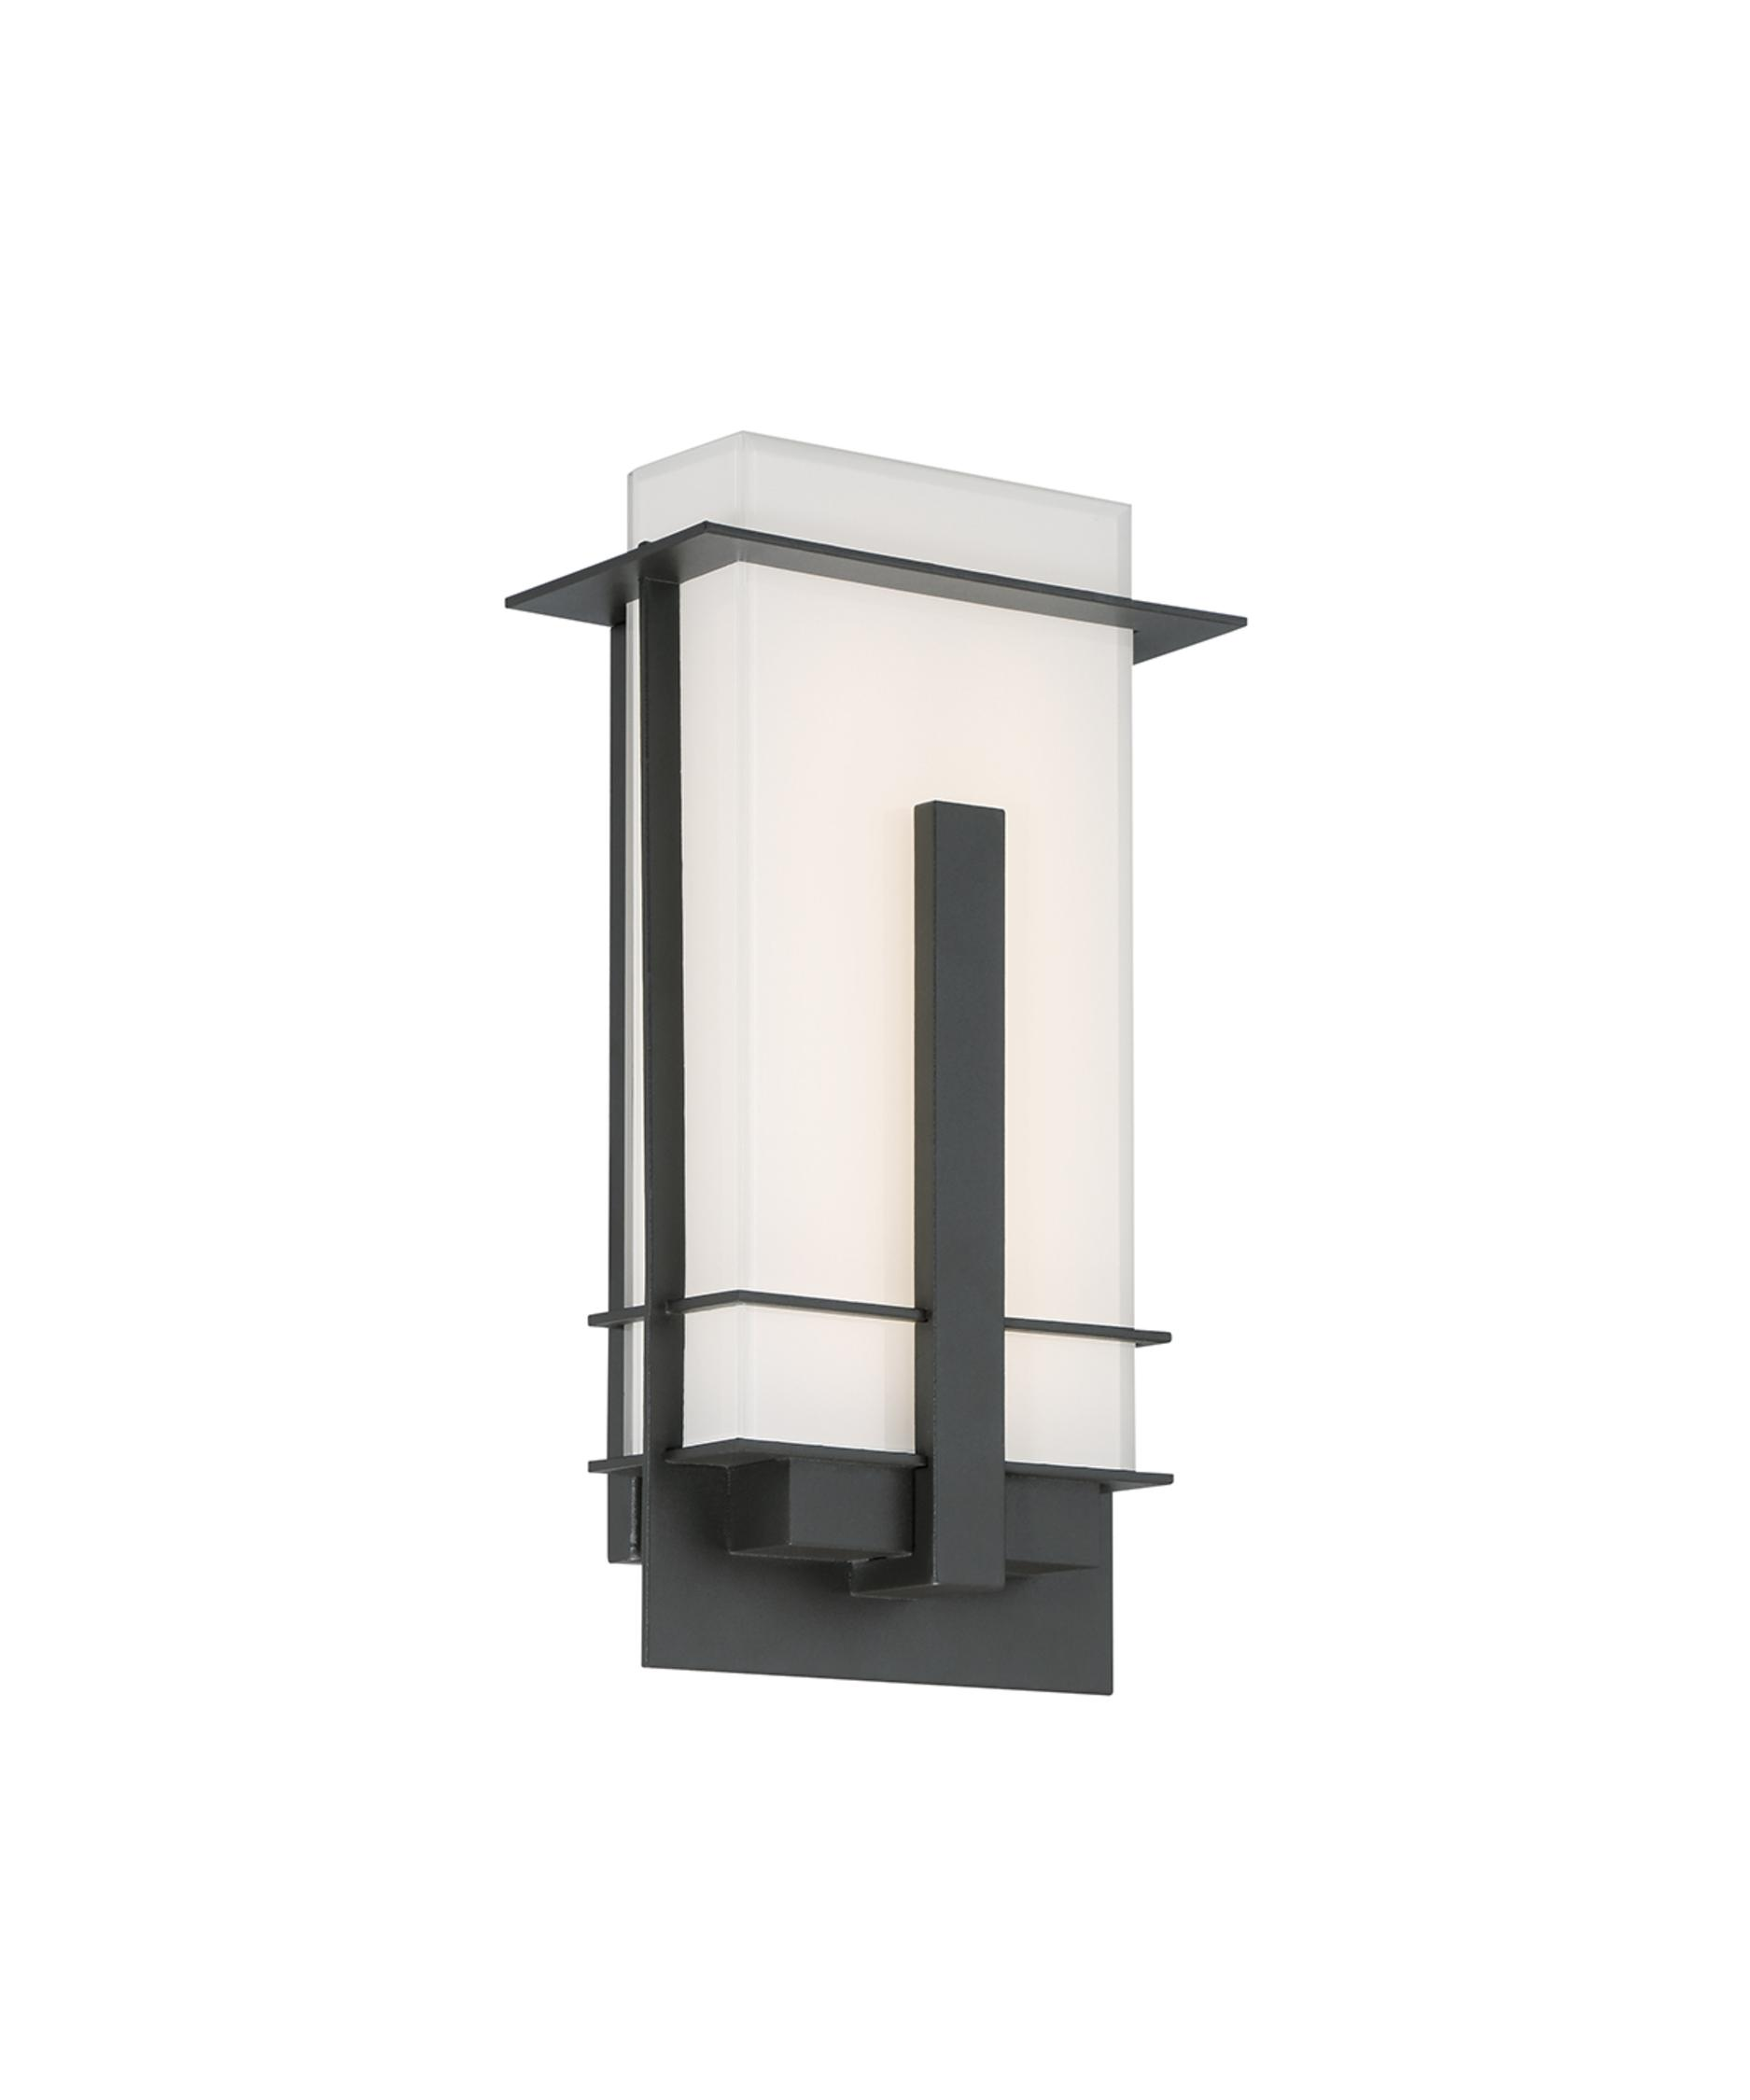 shown in bronze finish and miter cut white glass - Modern Forms Lighting